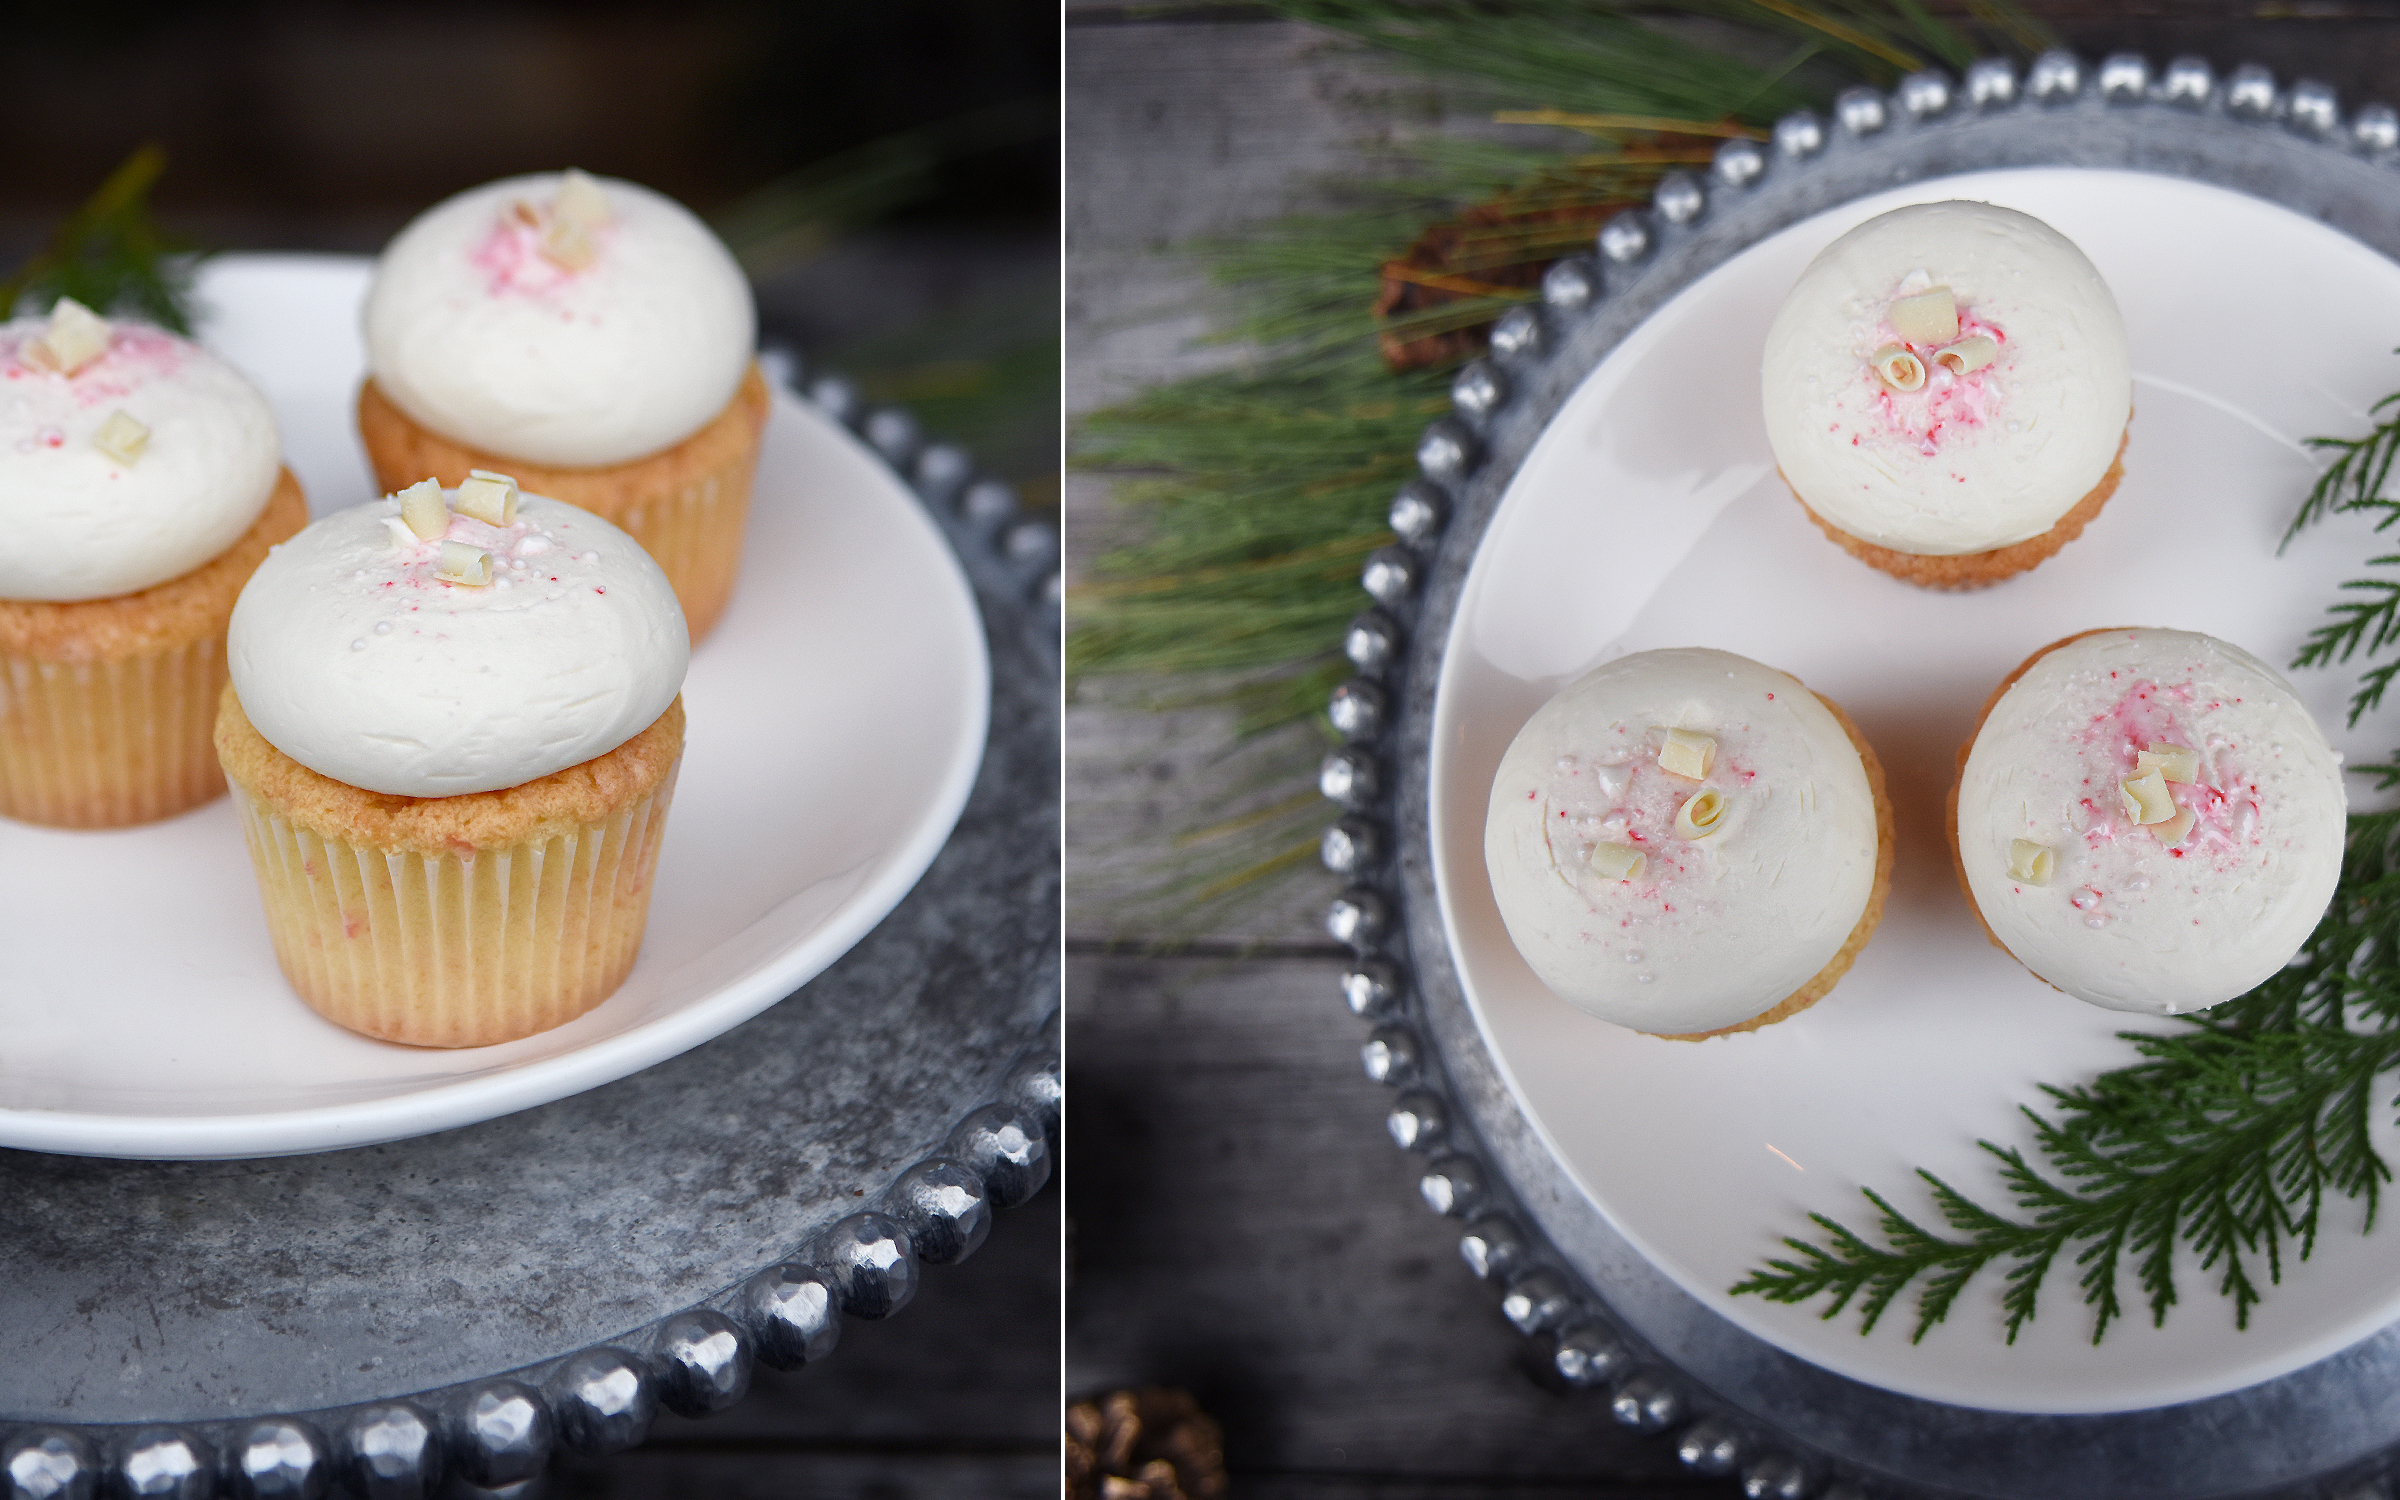 White Chocolate Peppermint Cupcake   2.95 each  We nestle crushed candies and white chocolate into our batter, then frost with white chocolate buttercream! So fun!   (Available December and January)